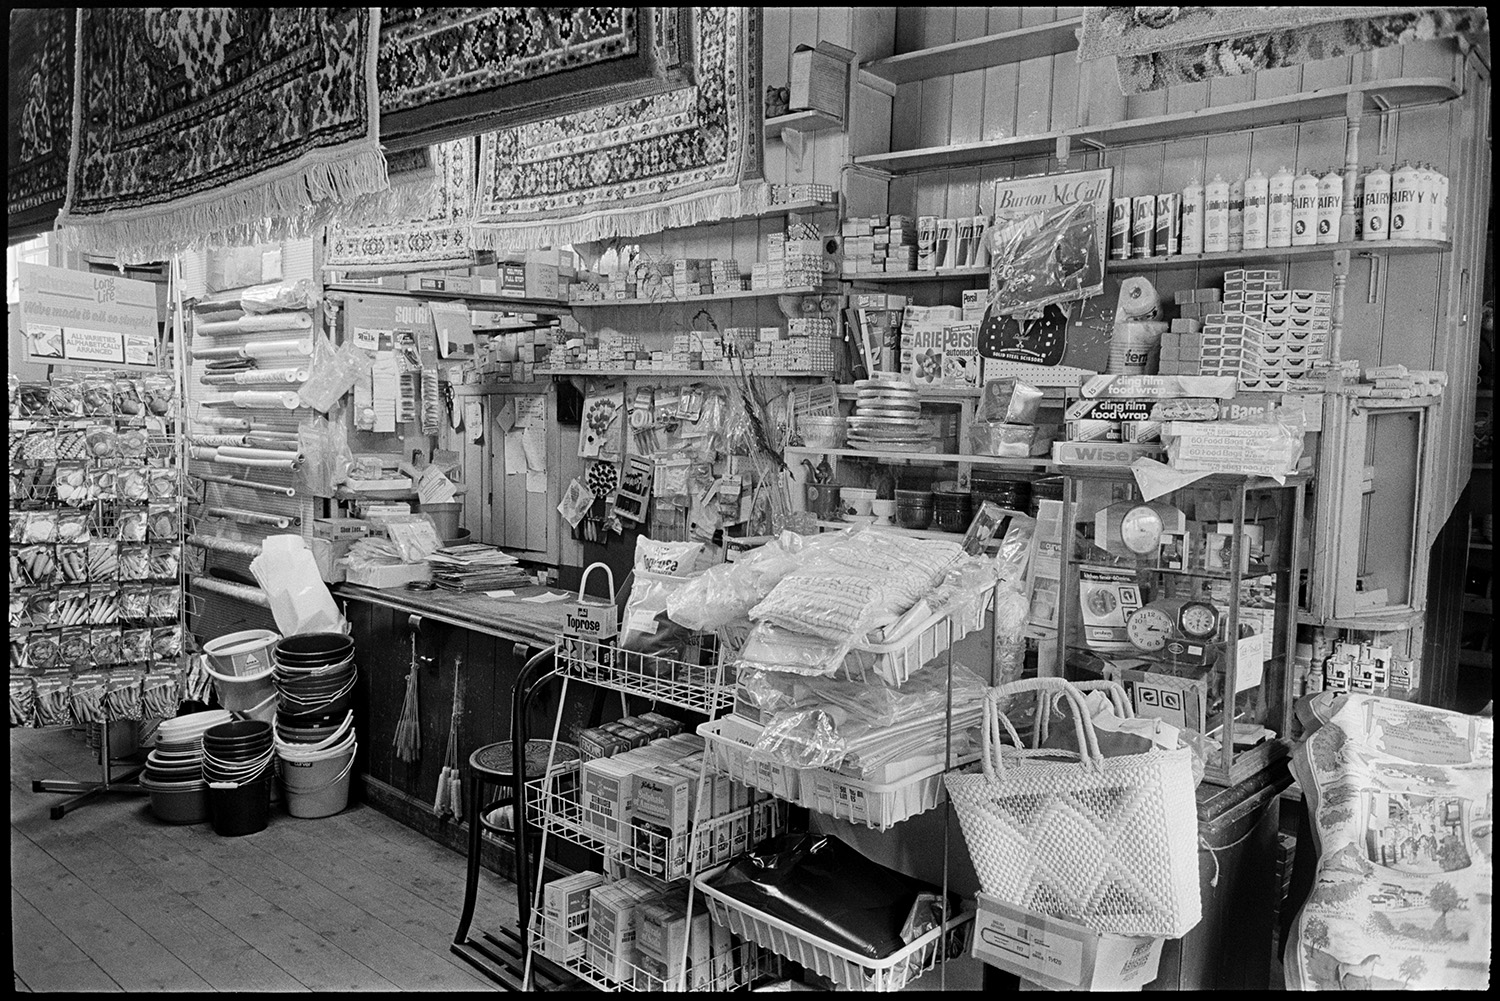 The interior of Ellacott's Ironmongery shop in Market Street, Hatherleigh. The shop counter is visible and various goods are on display, including seeds, buckets, rugs and clocks.